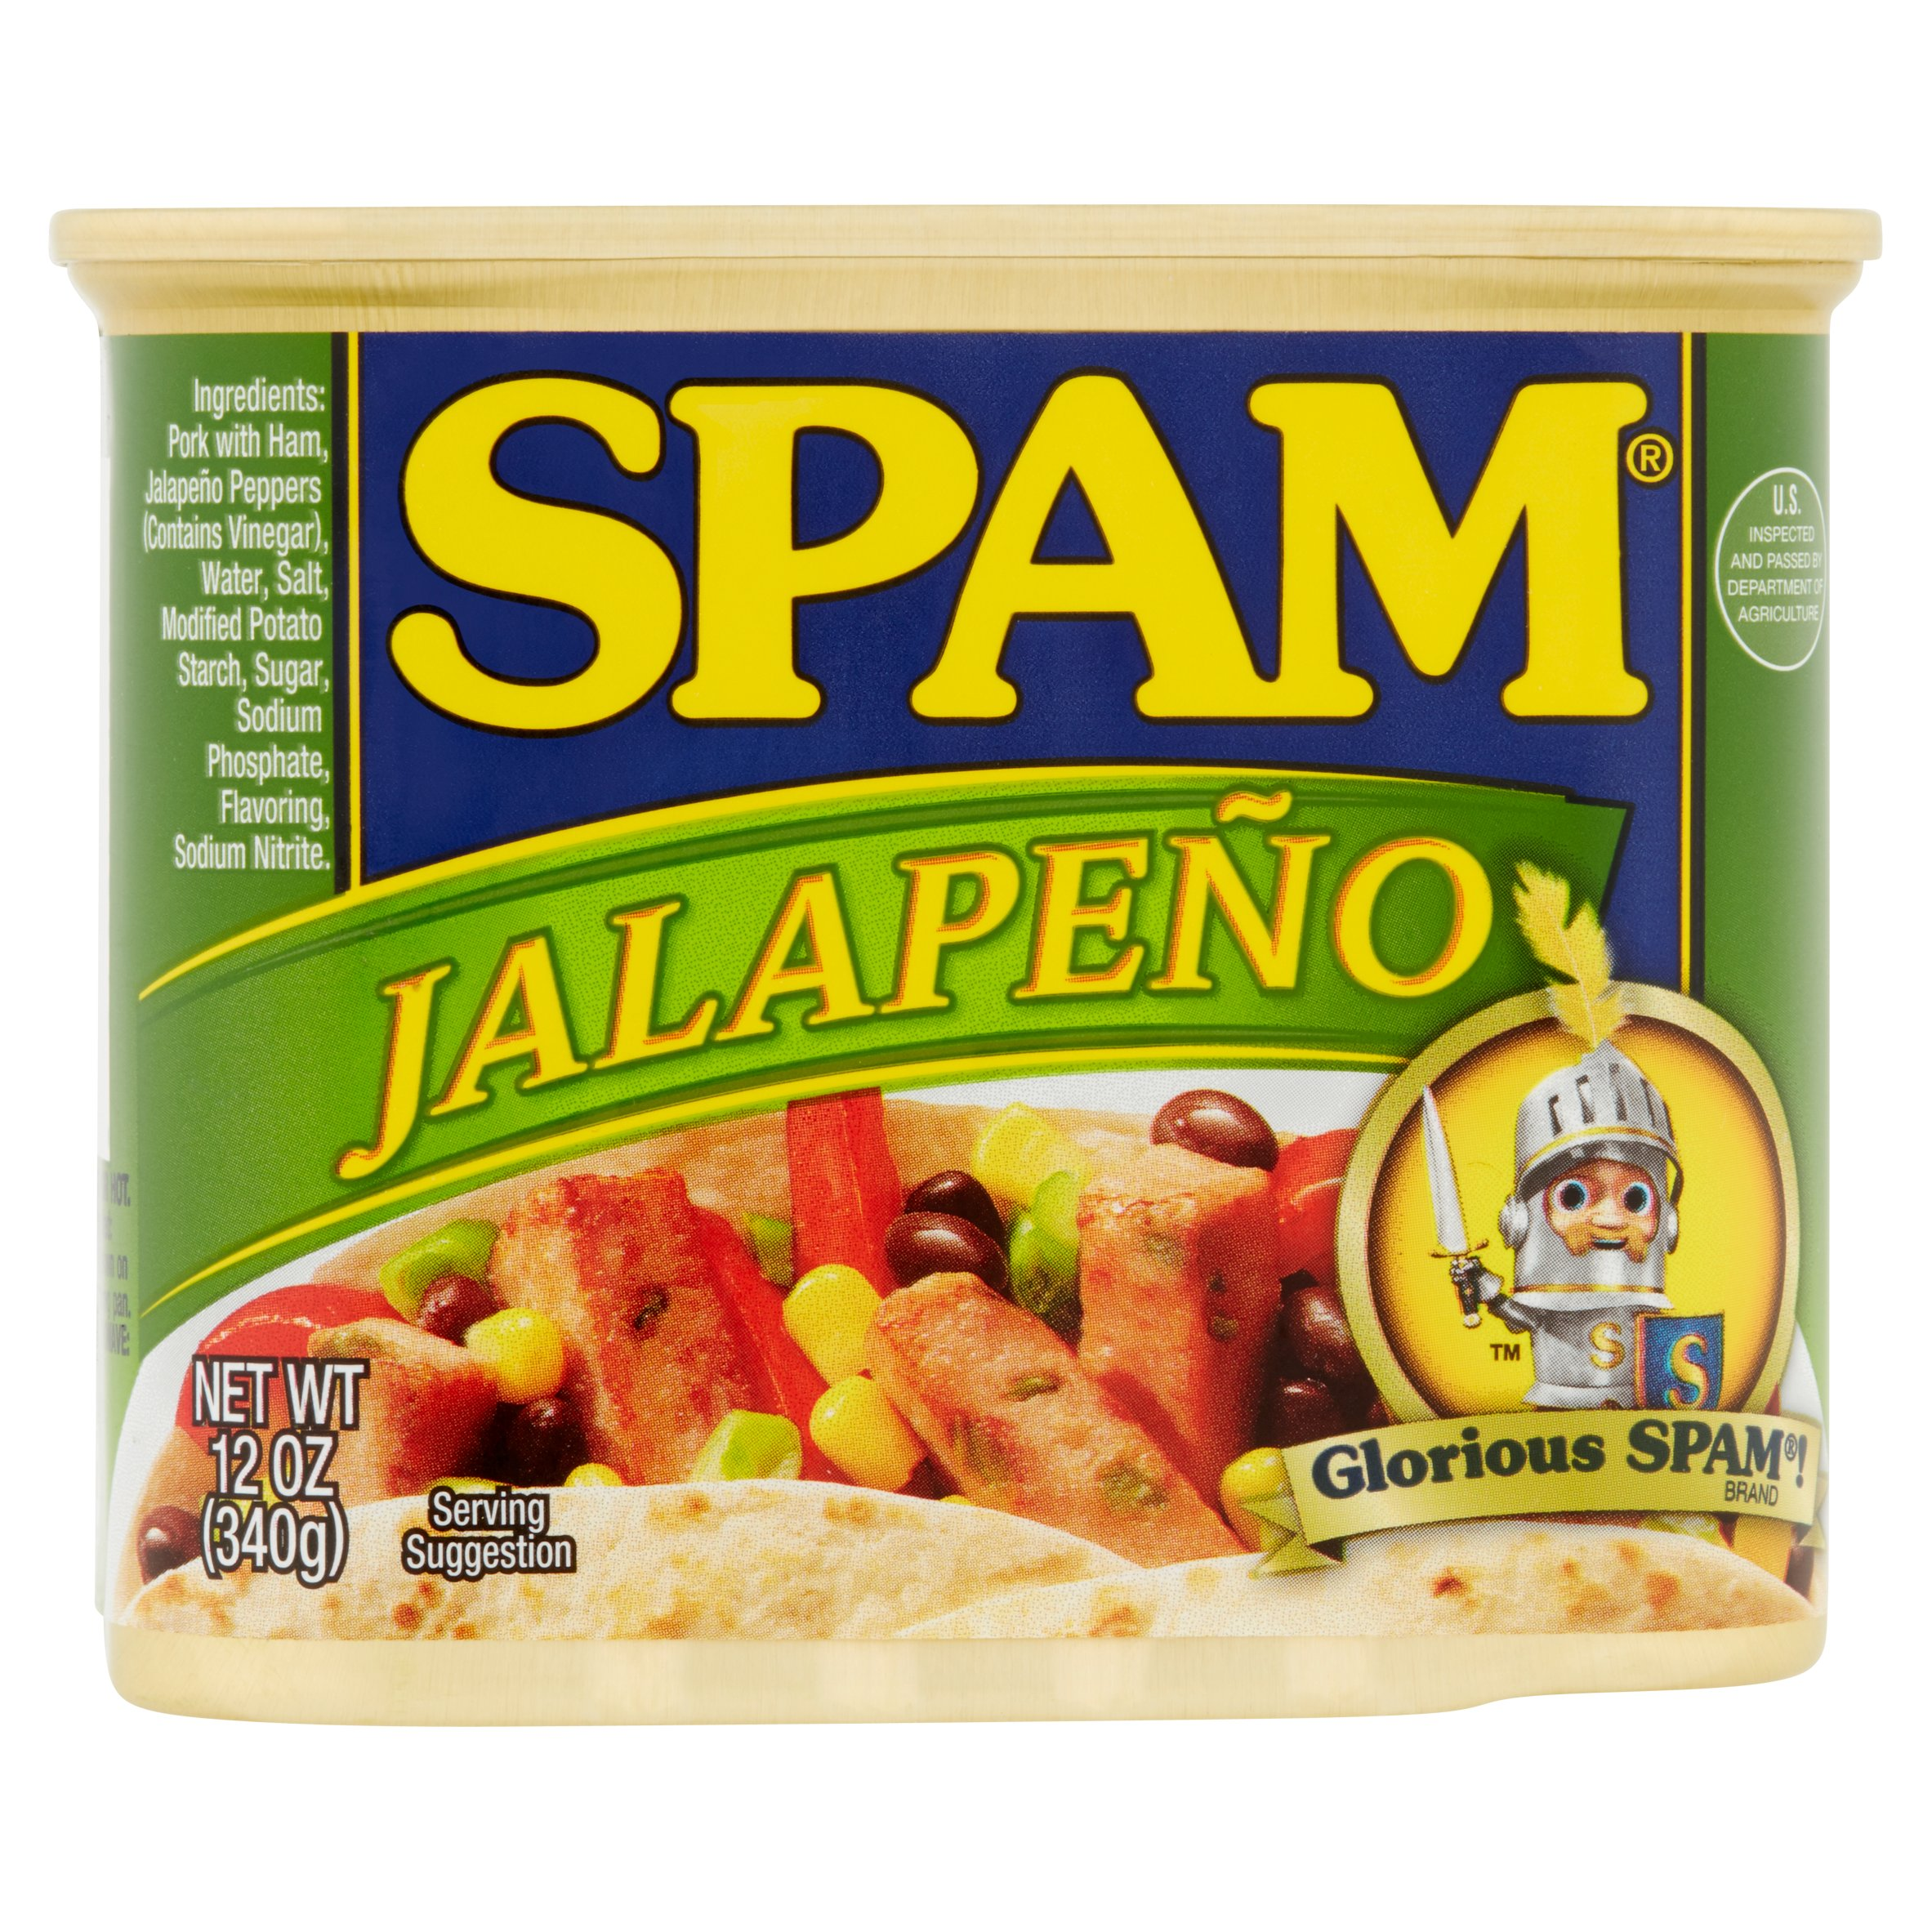 Spam Jalapeno Canned Meat 12 oz. Pull-Top Can by Hormel Foods Corporation